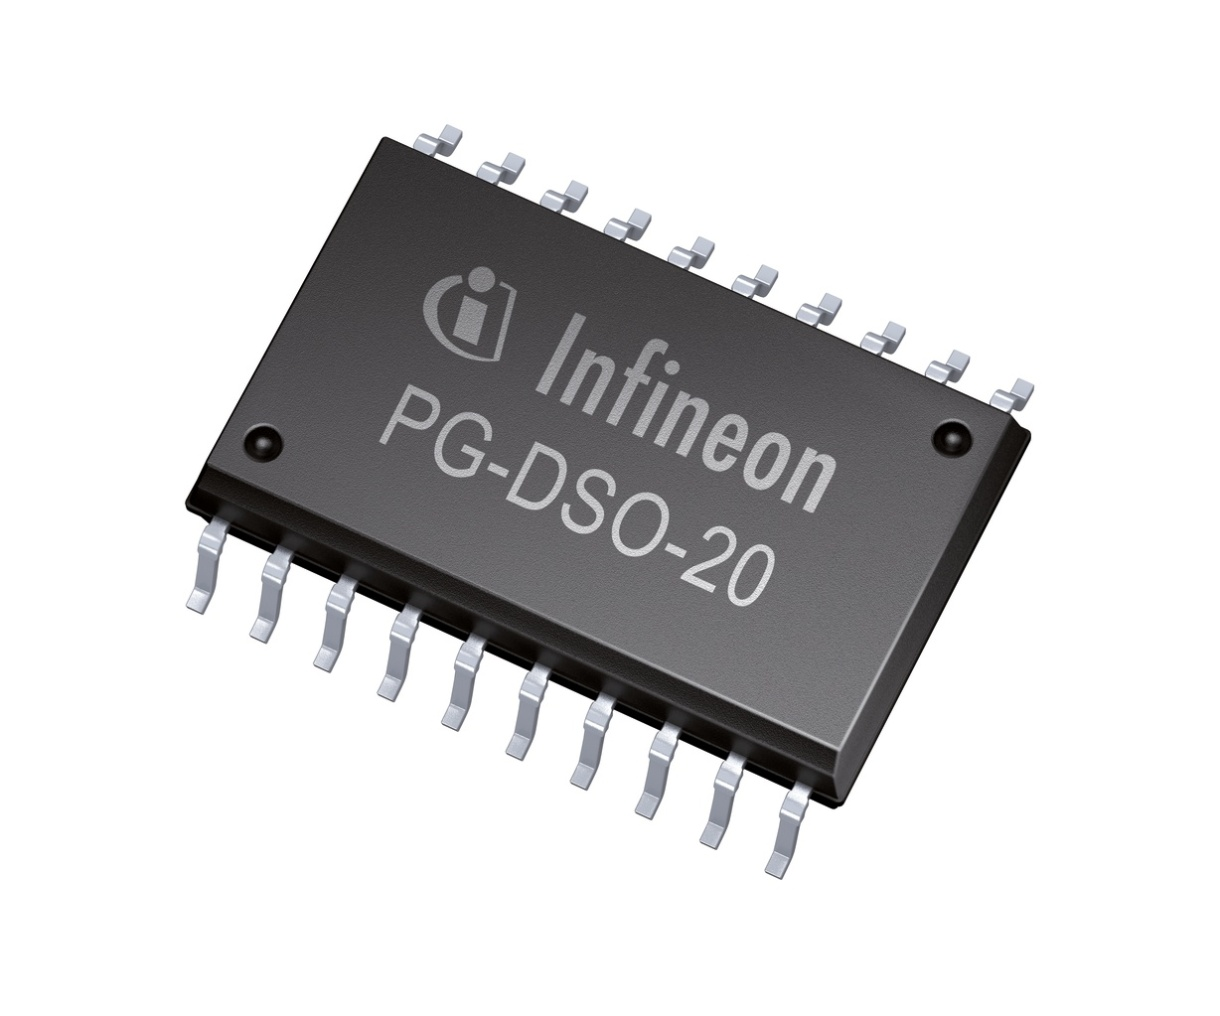 Its716g Infineon Technologies The N Type Mosfet Irf3205s Can Be Replaced With Different Types Of 01 2012 07 20 Pdf 509 Kb